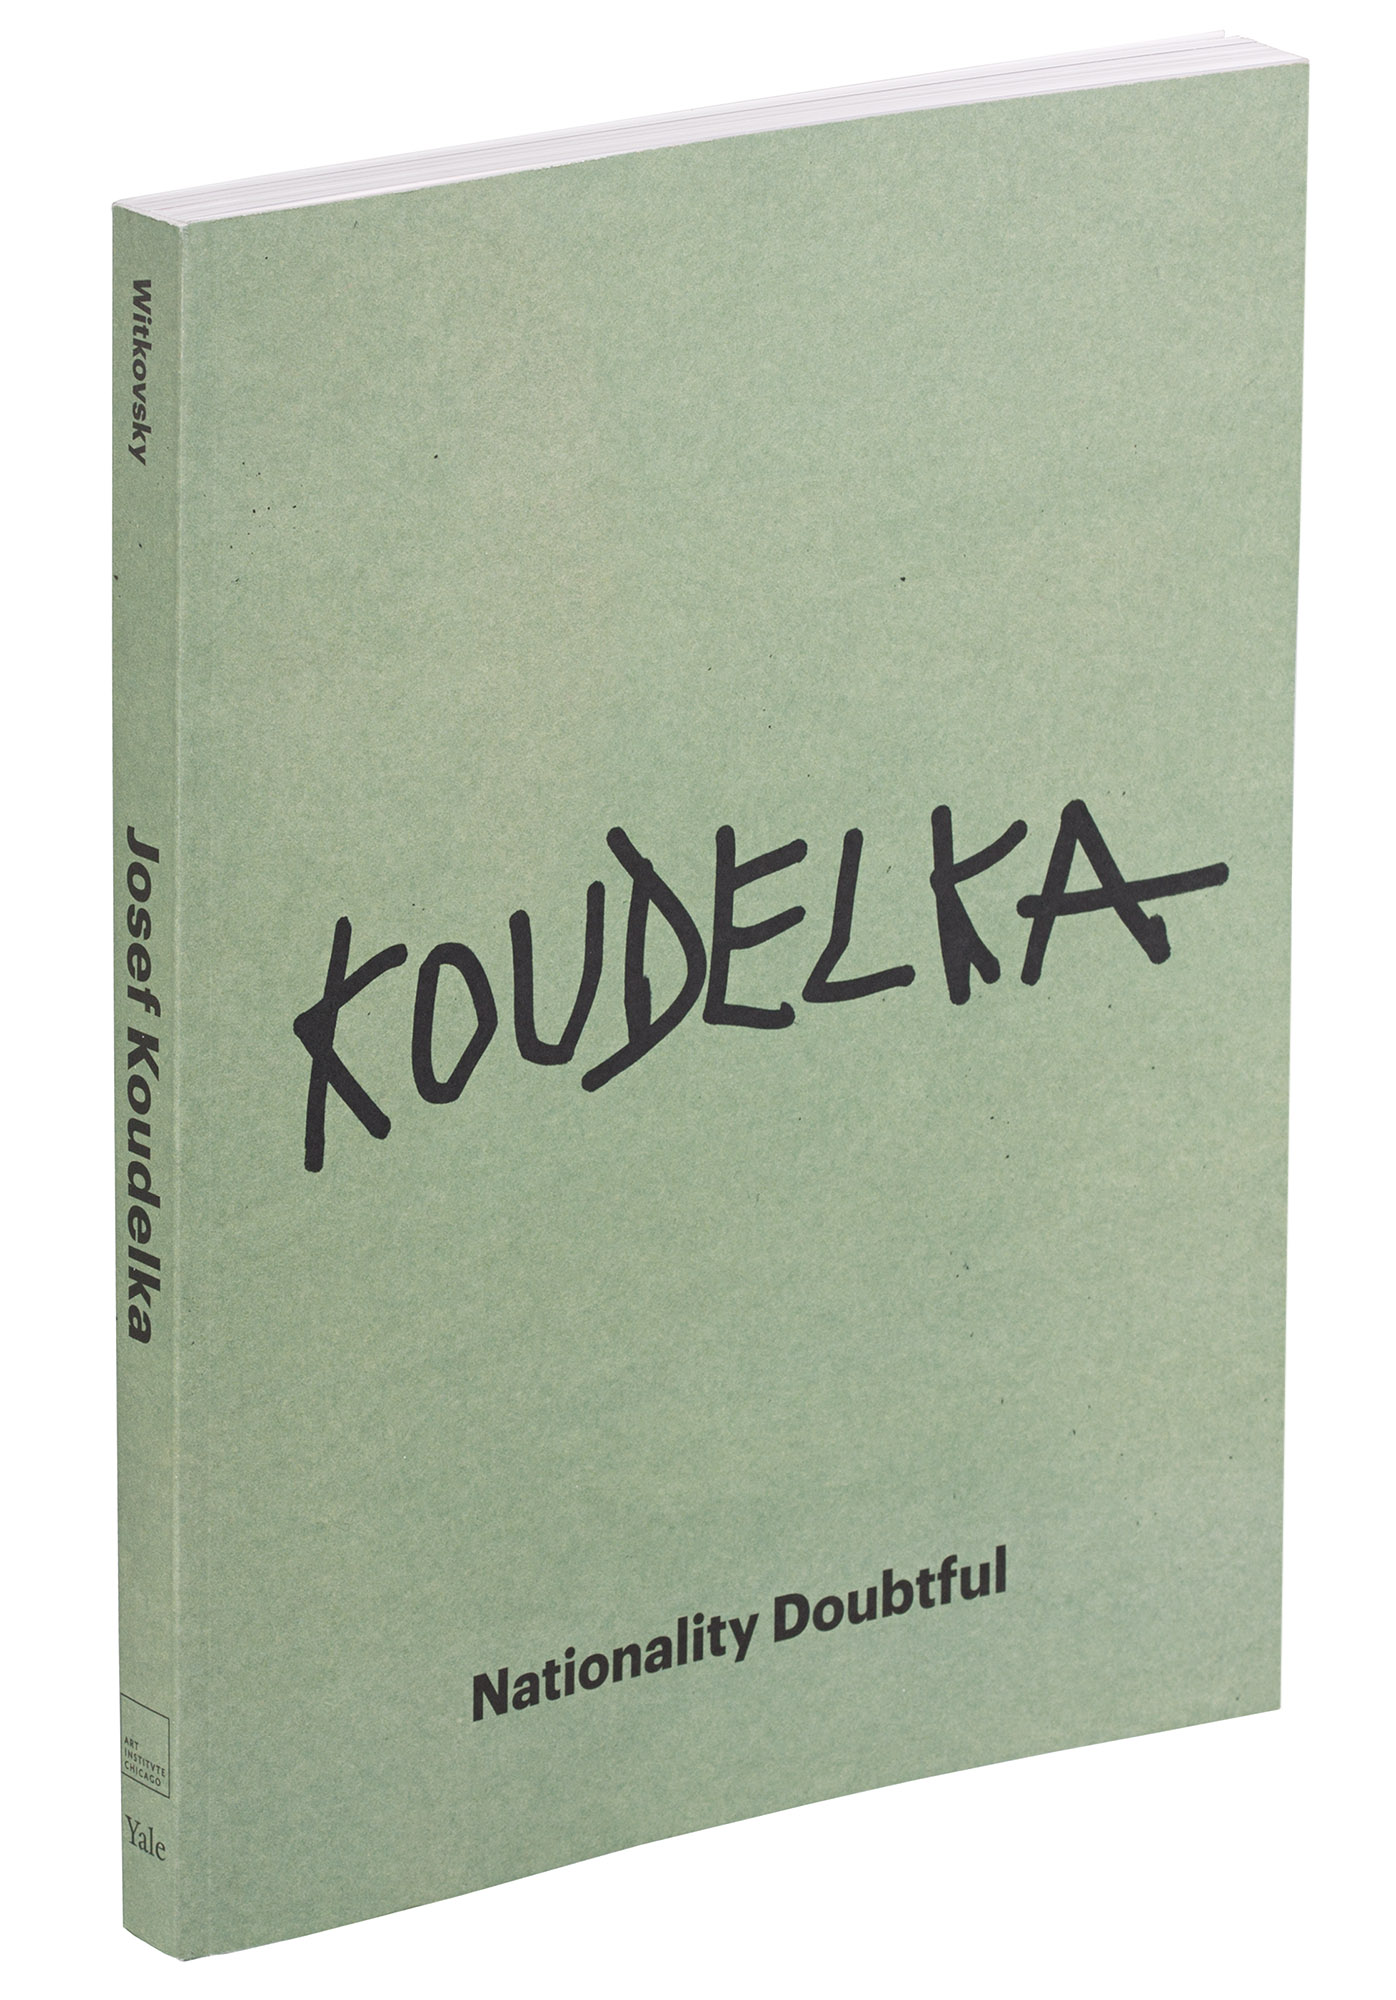 Josef Koudelka: Nationality Doubtful